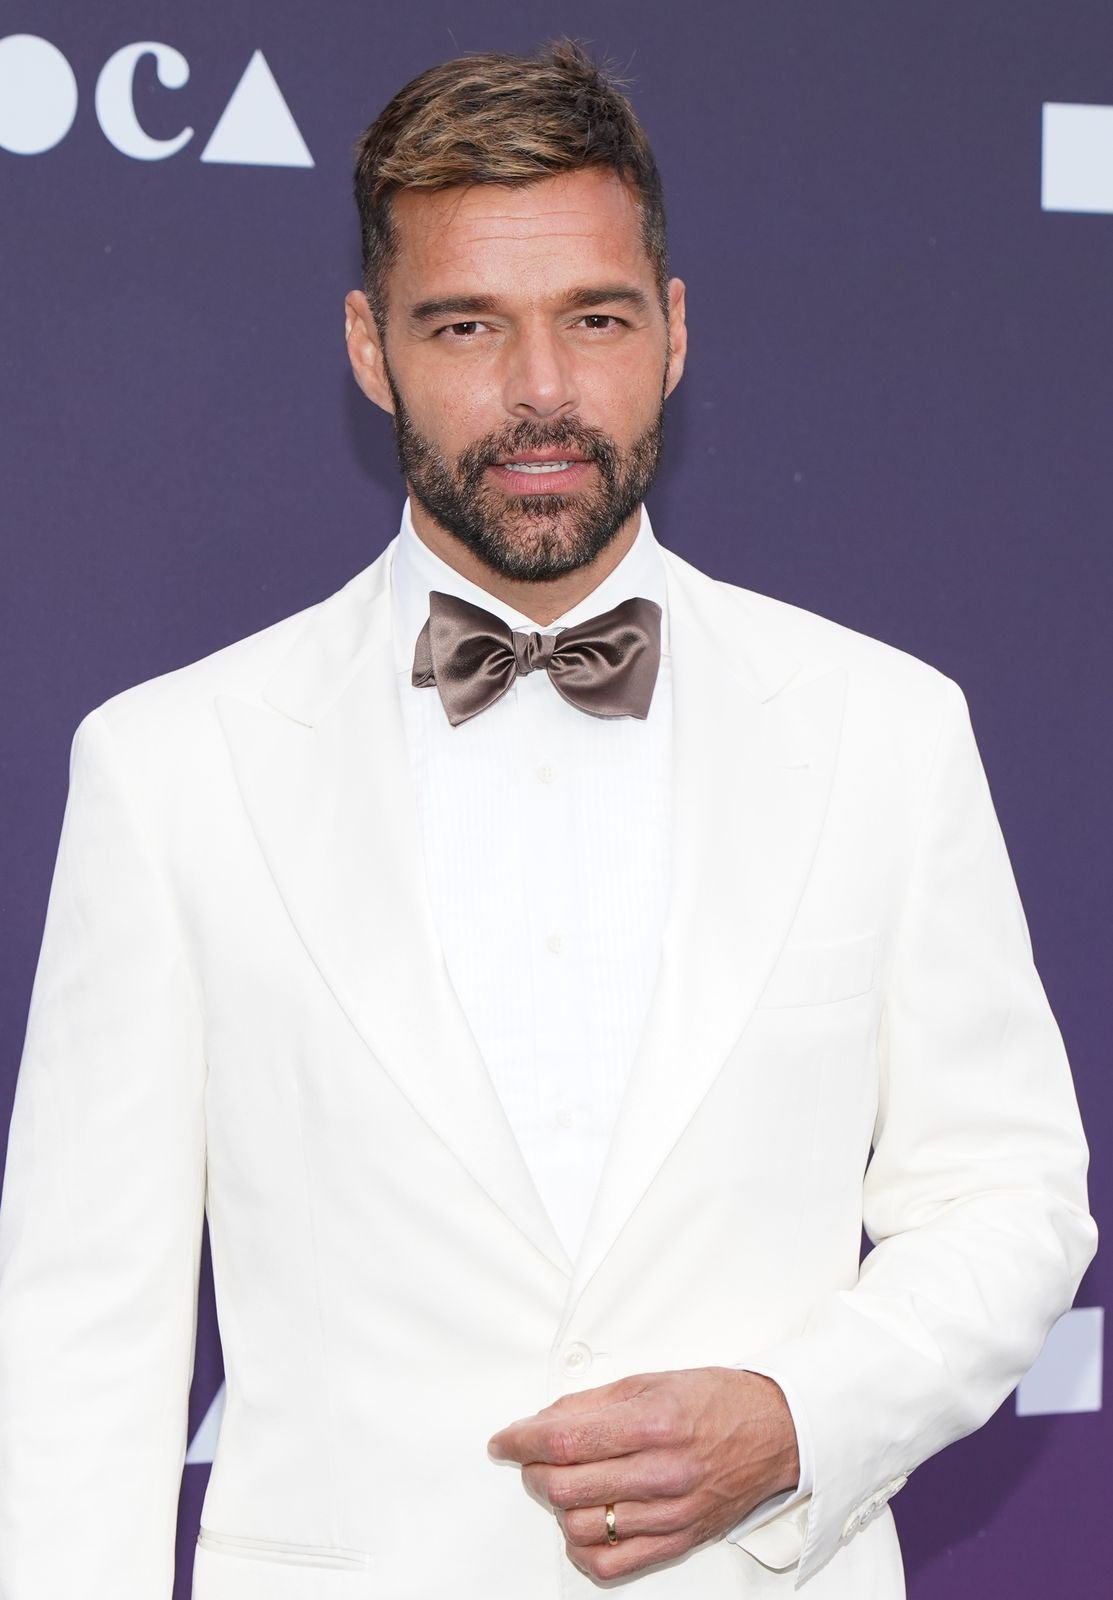 Ricky Martin at the MOCA Benefit at The Geffen Contemporary at MOCA on May 18, 2019, in Los Angeles, California | Photo: Rachel Luna/WireImage/Getty Images